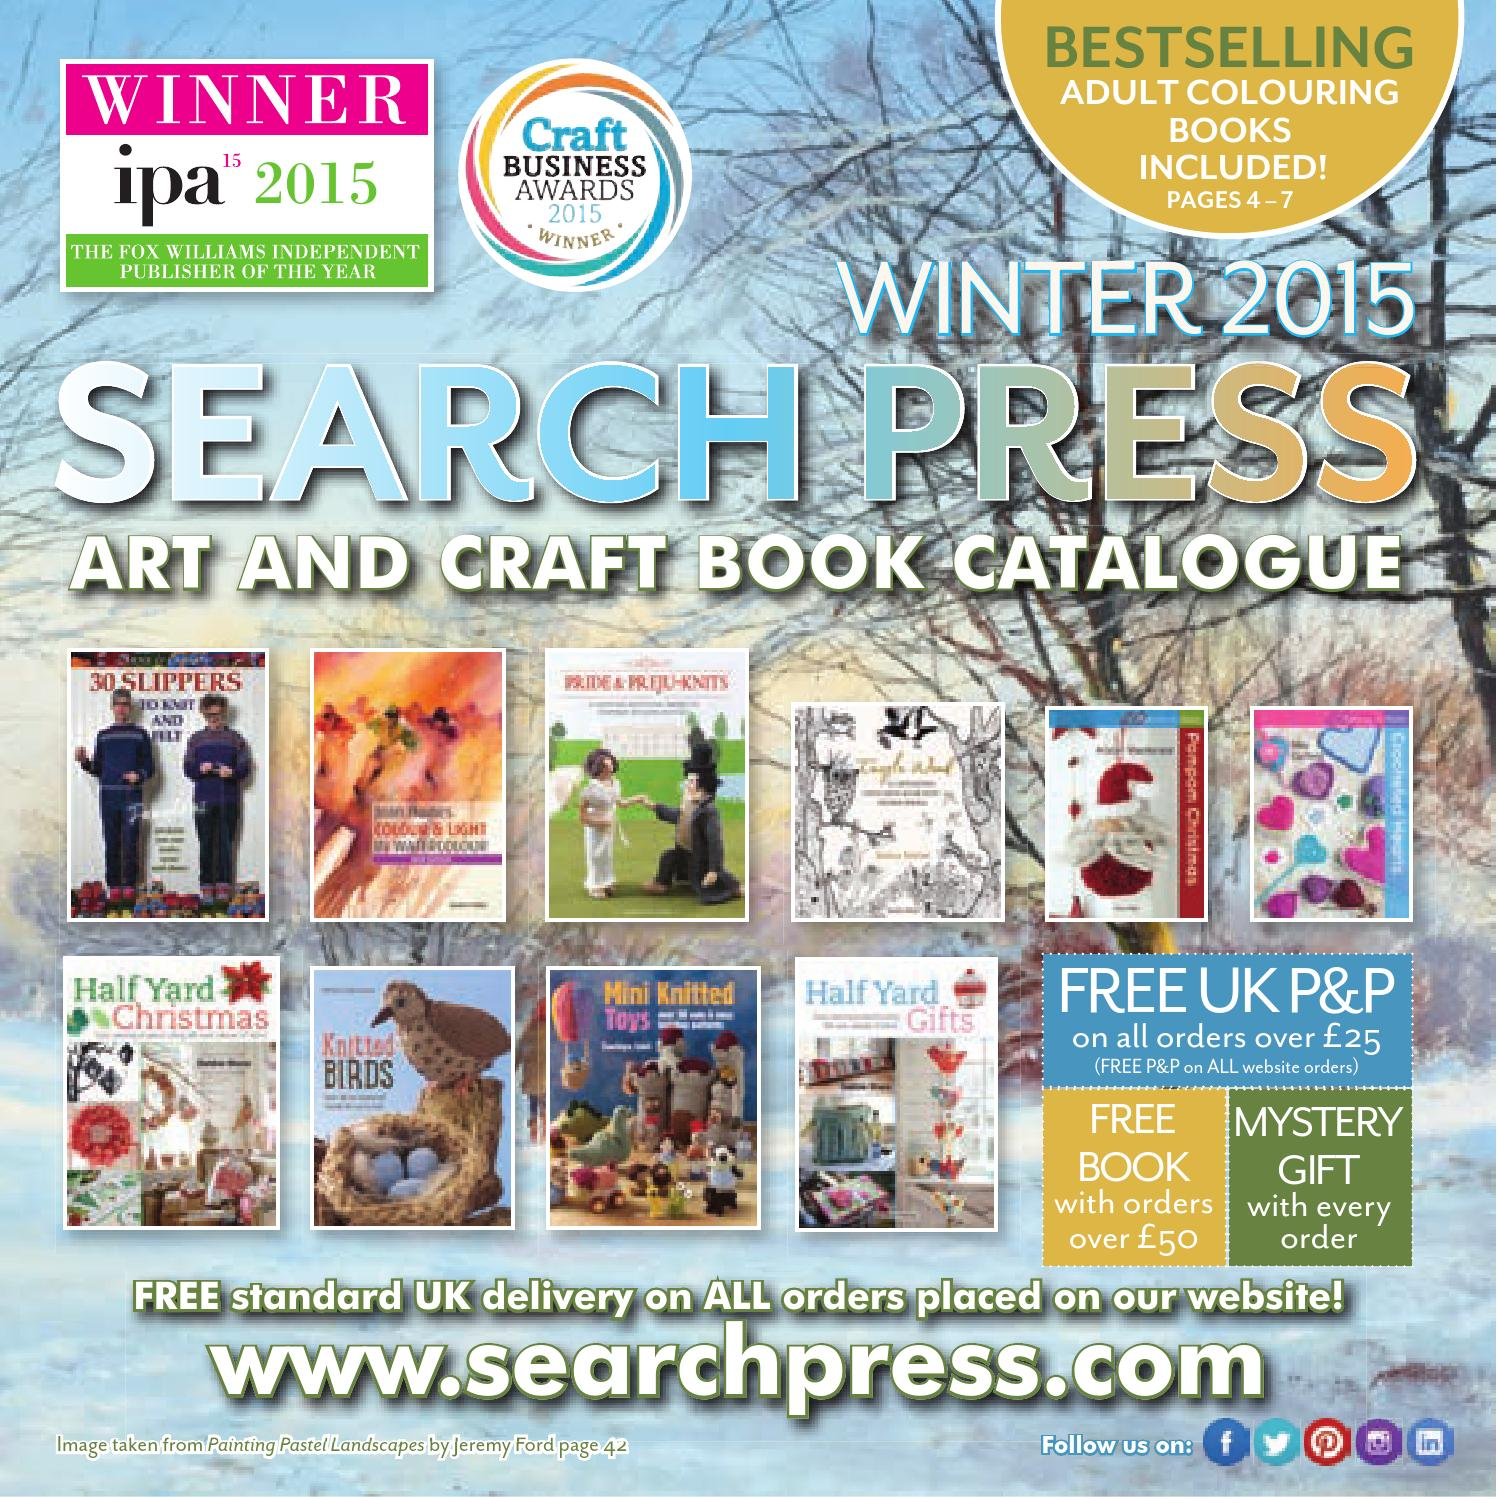 Search Press Winter 2015 Catalogue By Issuu Ball Mill Diagram Http Canvasworksneedlepointcom Ballmilldiagram